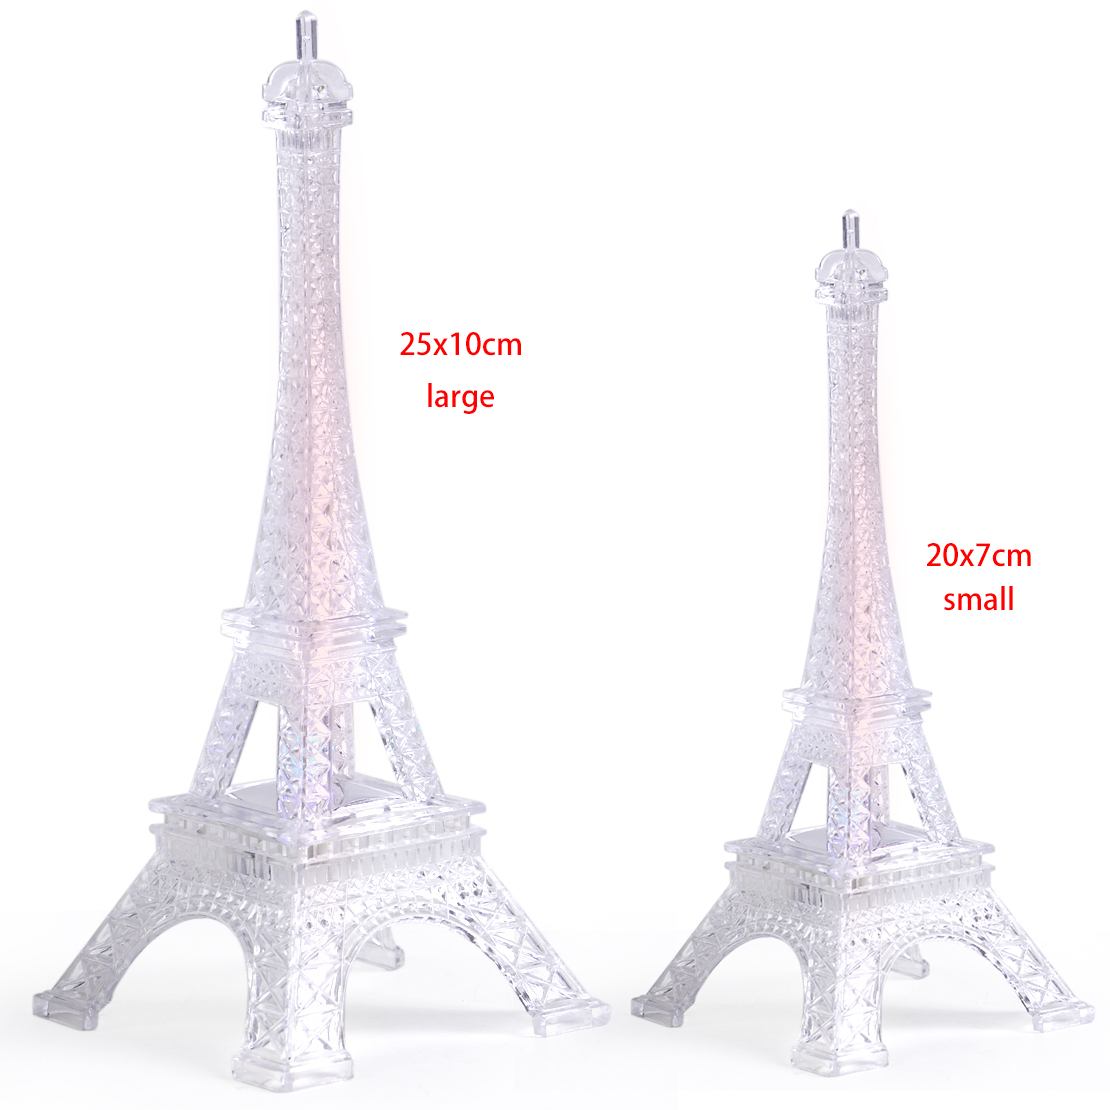 Details About Eiffel Tower Romantic Night Light Desk Bedroom Table LED